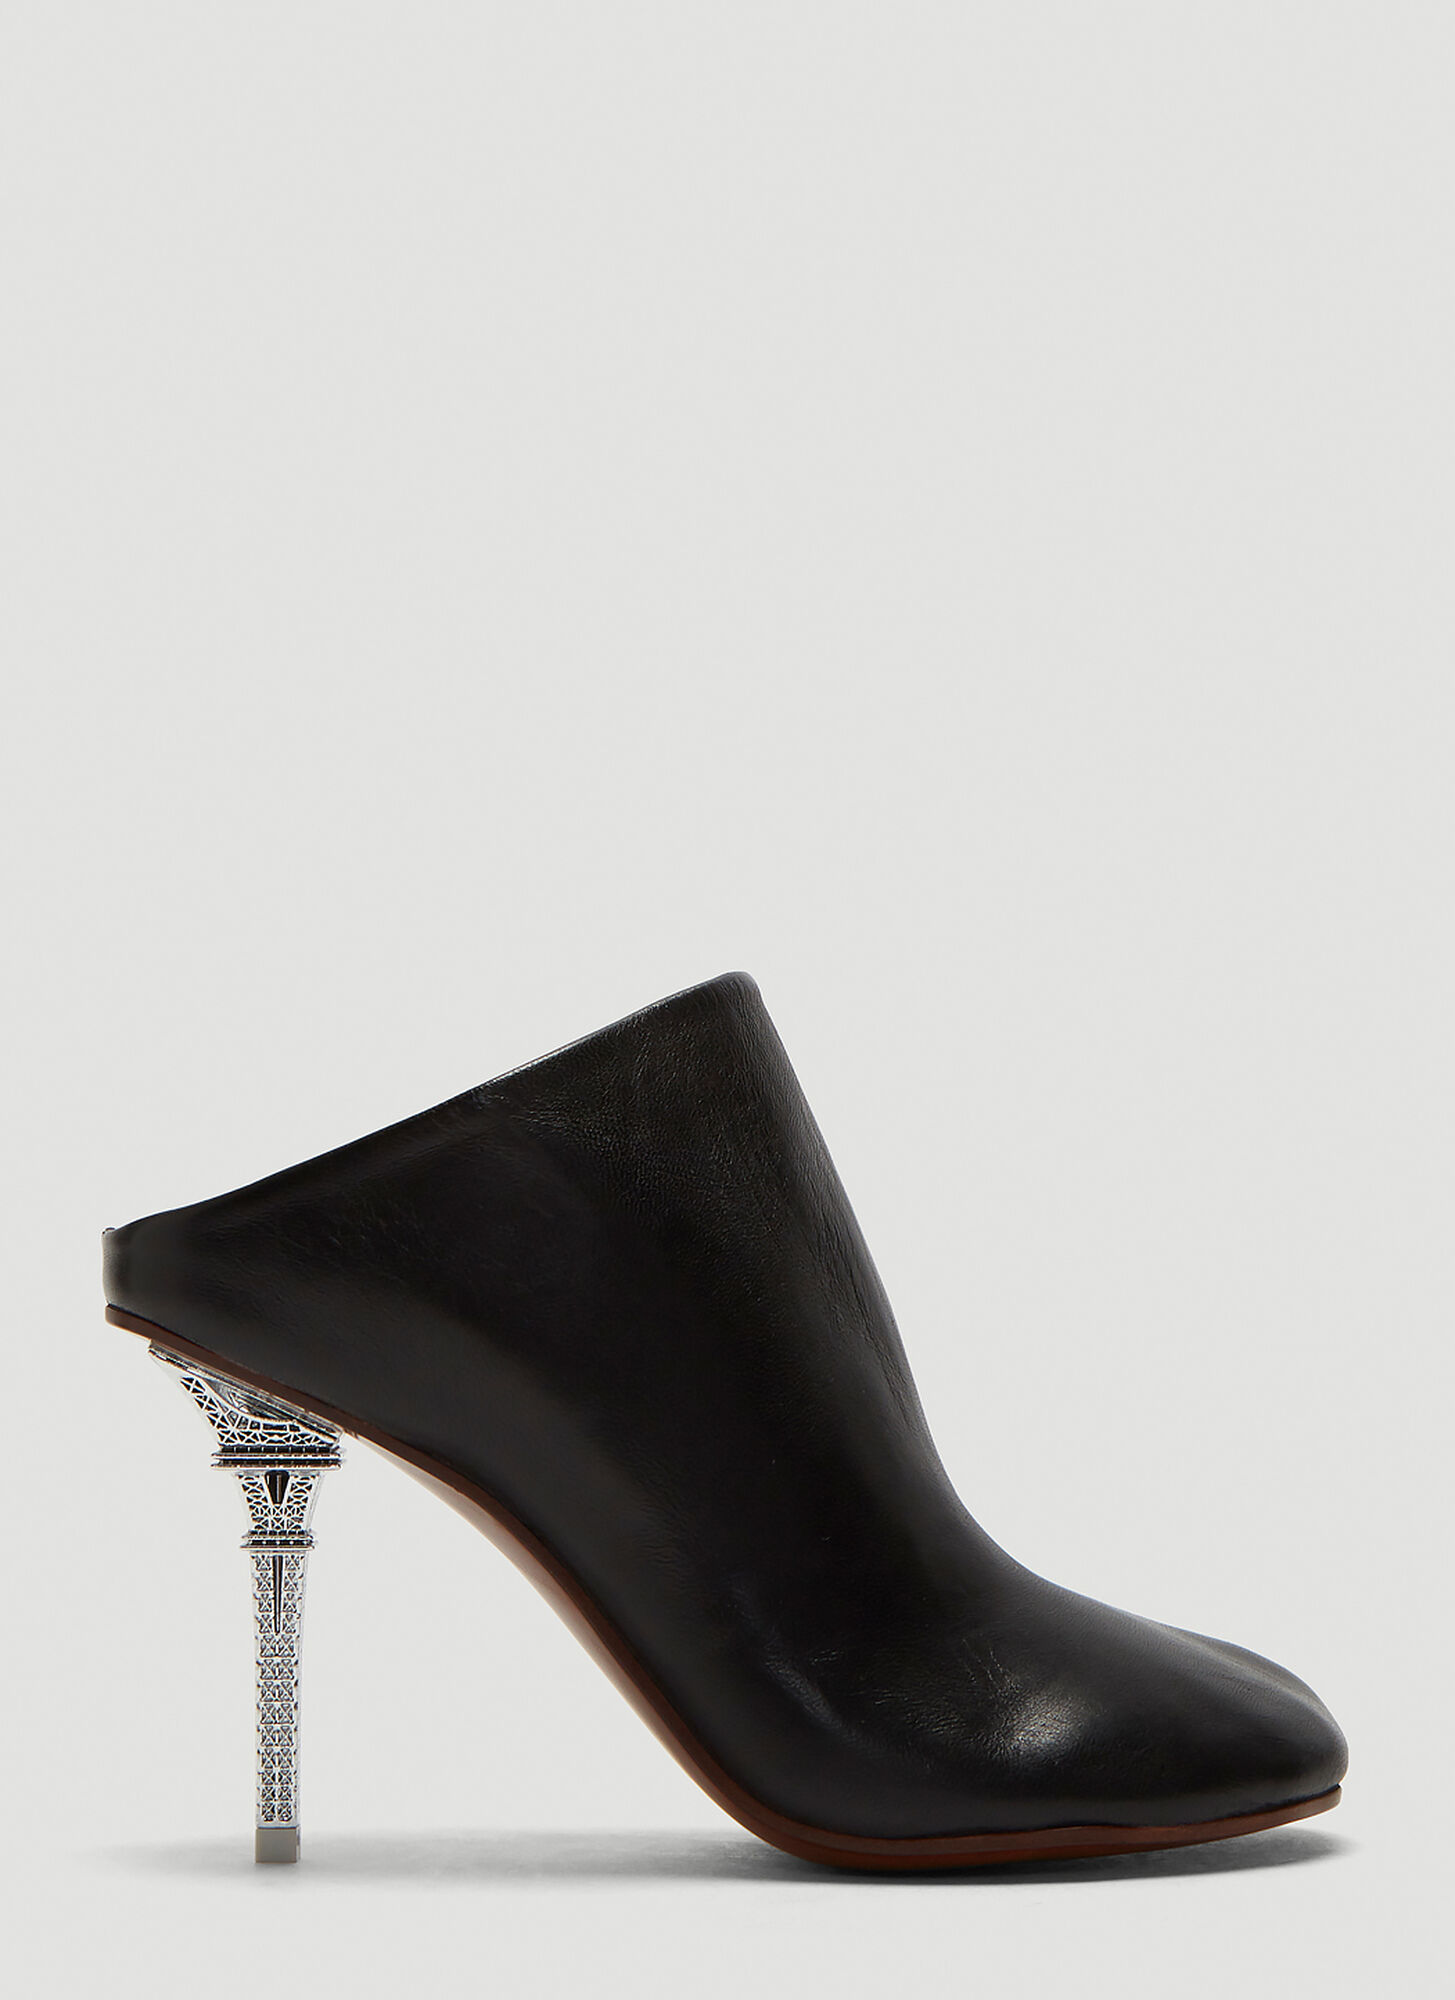 Vetements Eiffel Tower Heel Leather Mules in Black